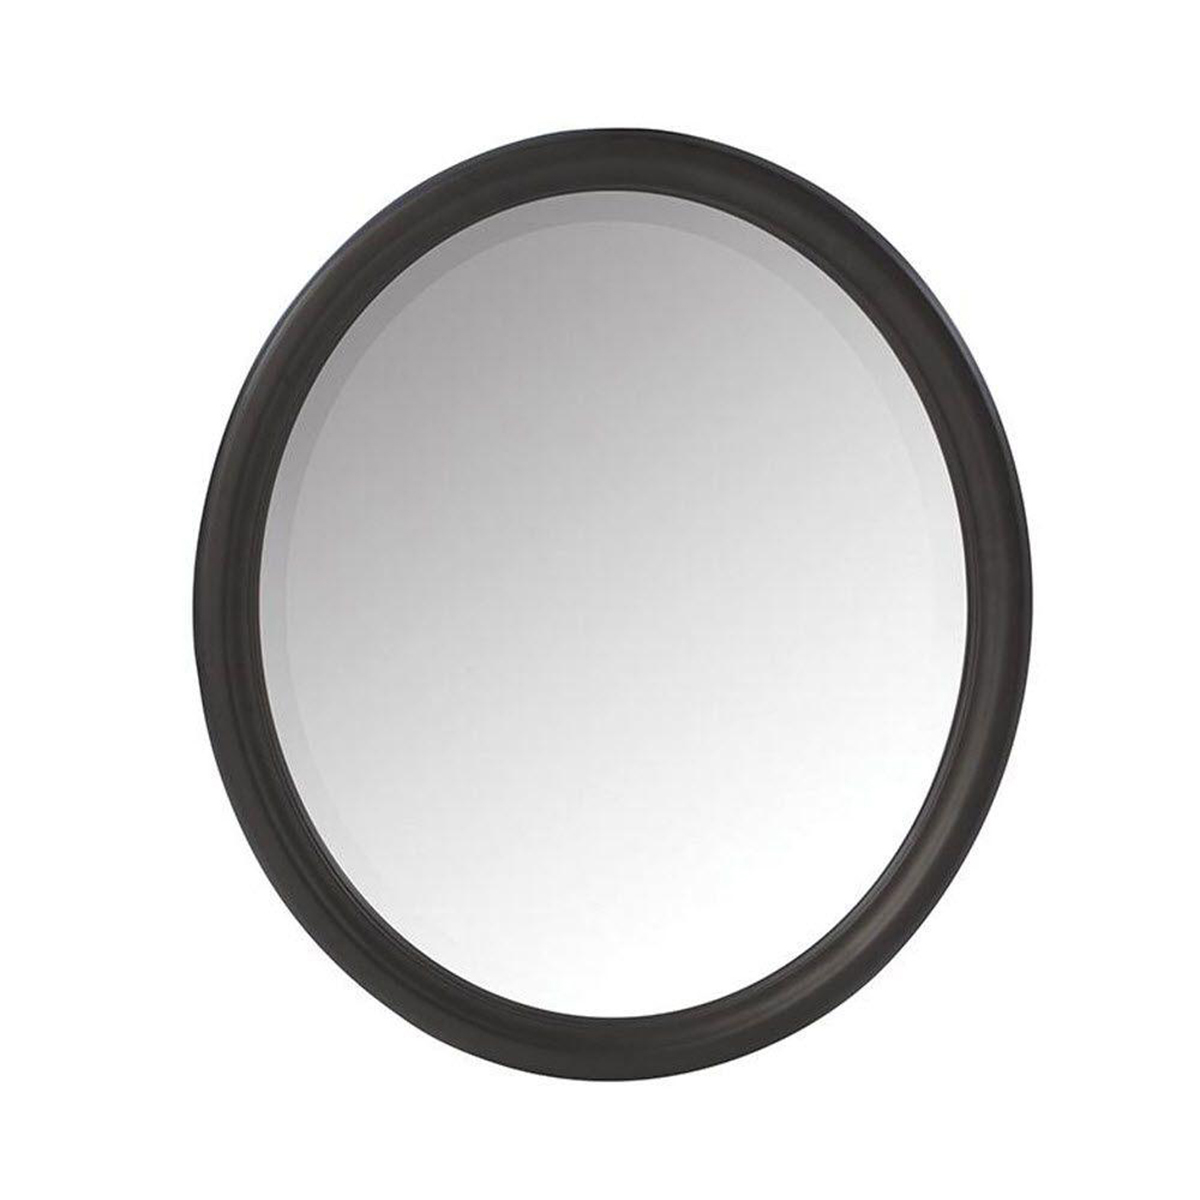 Oval wall mirror with black frame photo